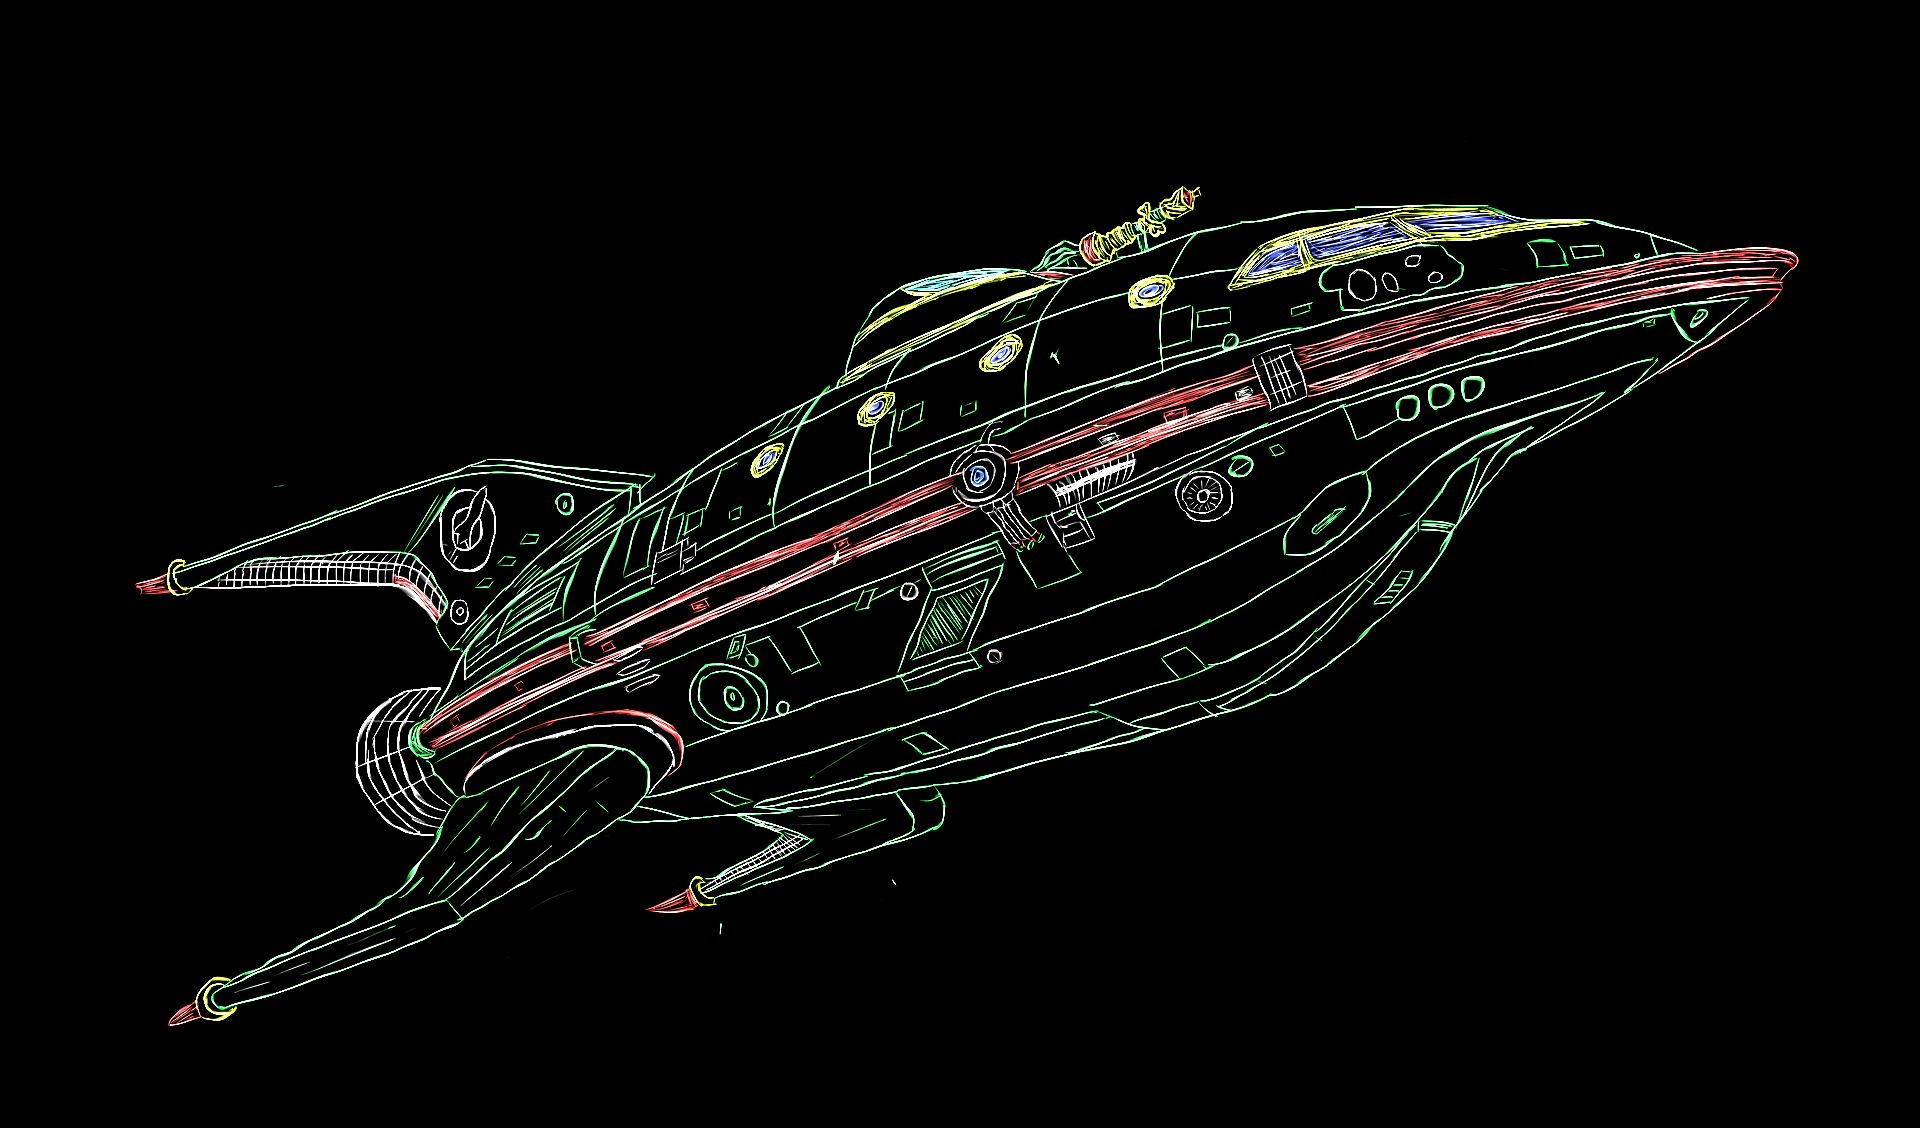 Ship from Futurama